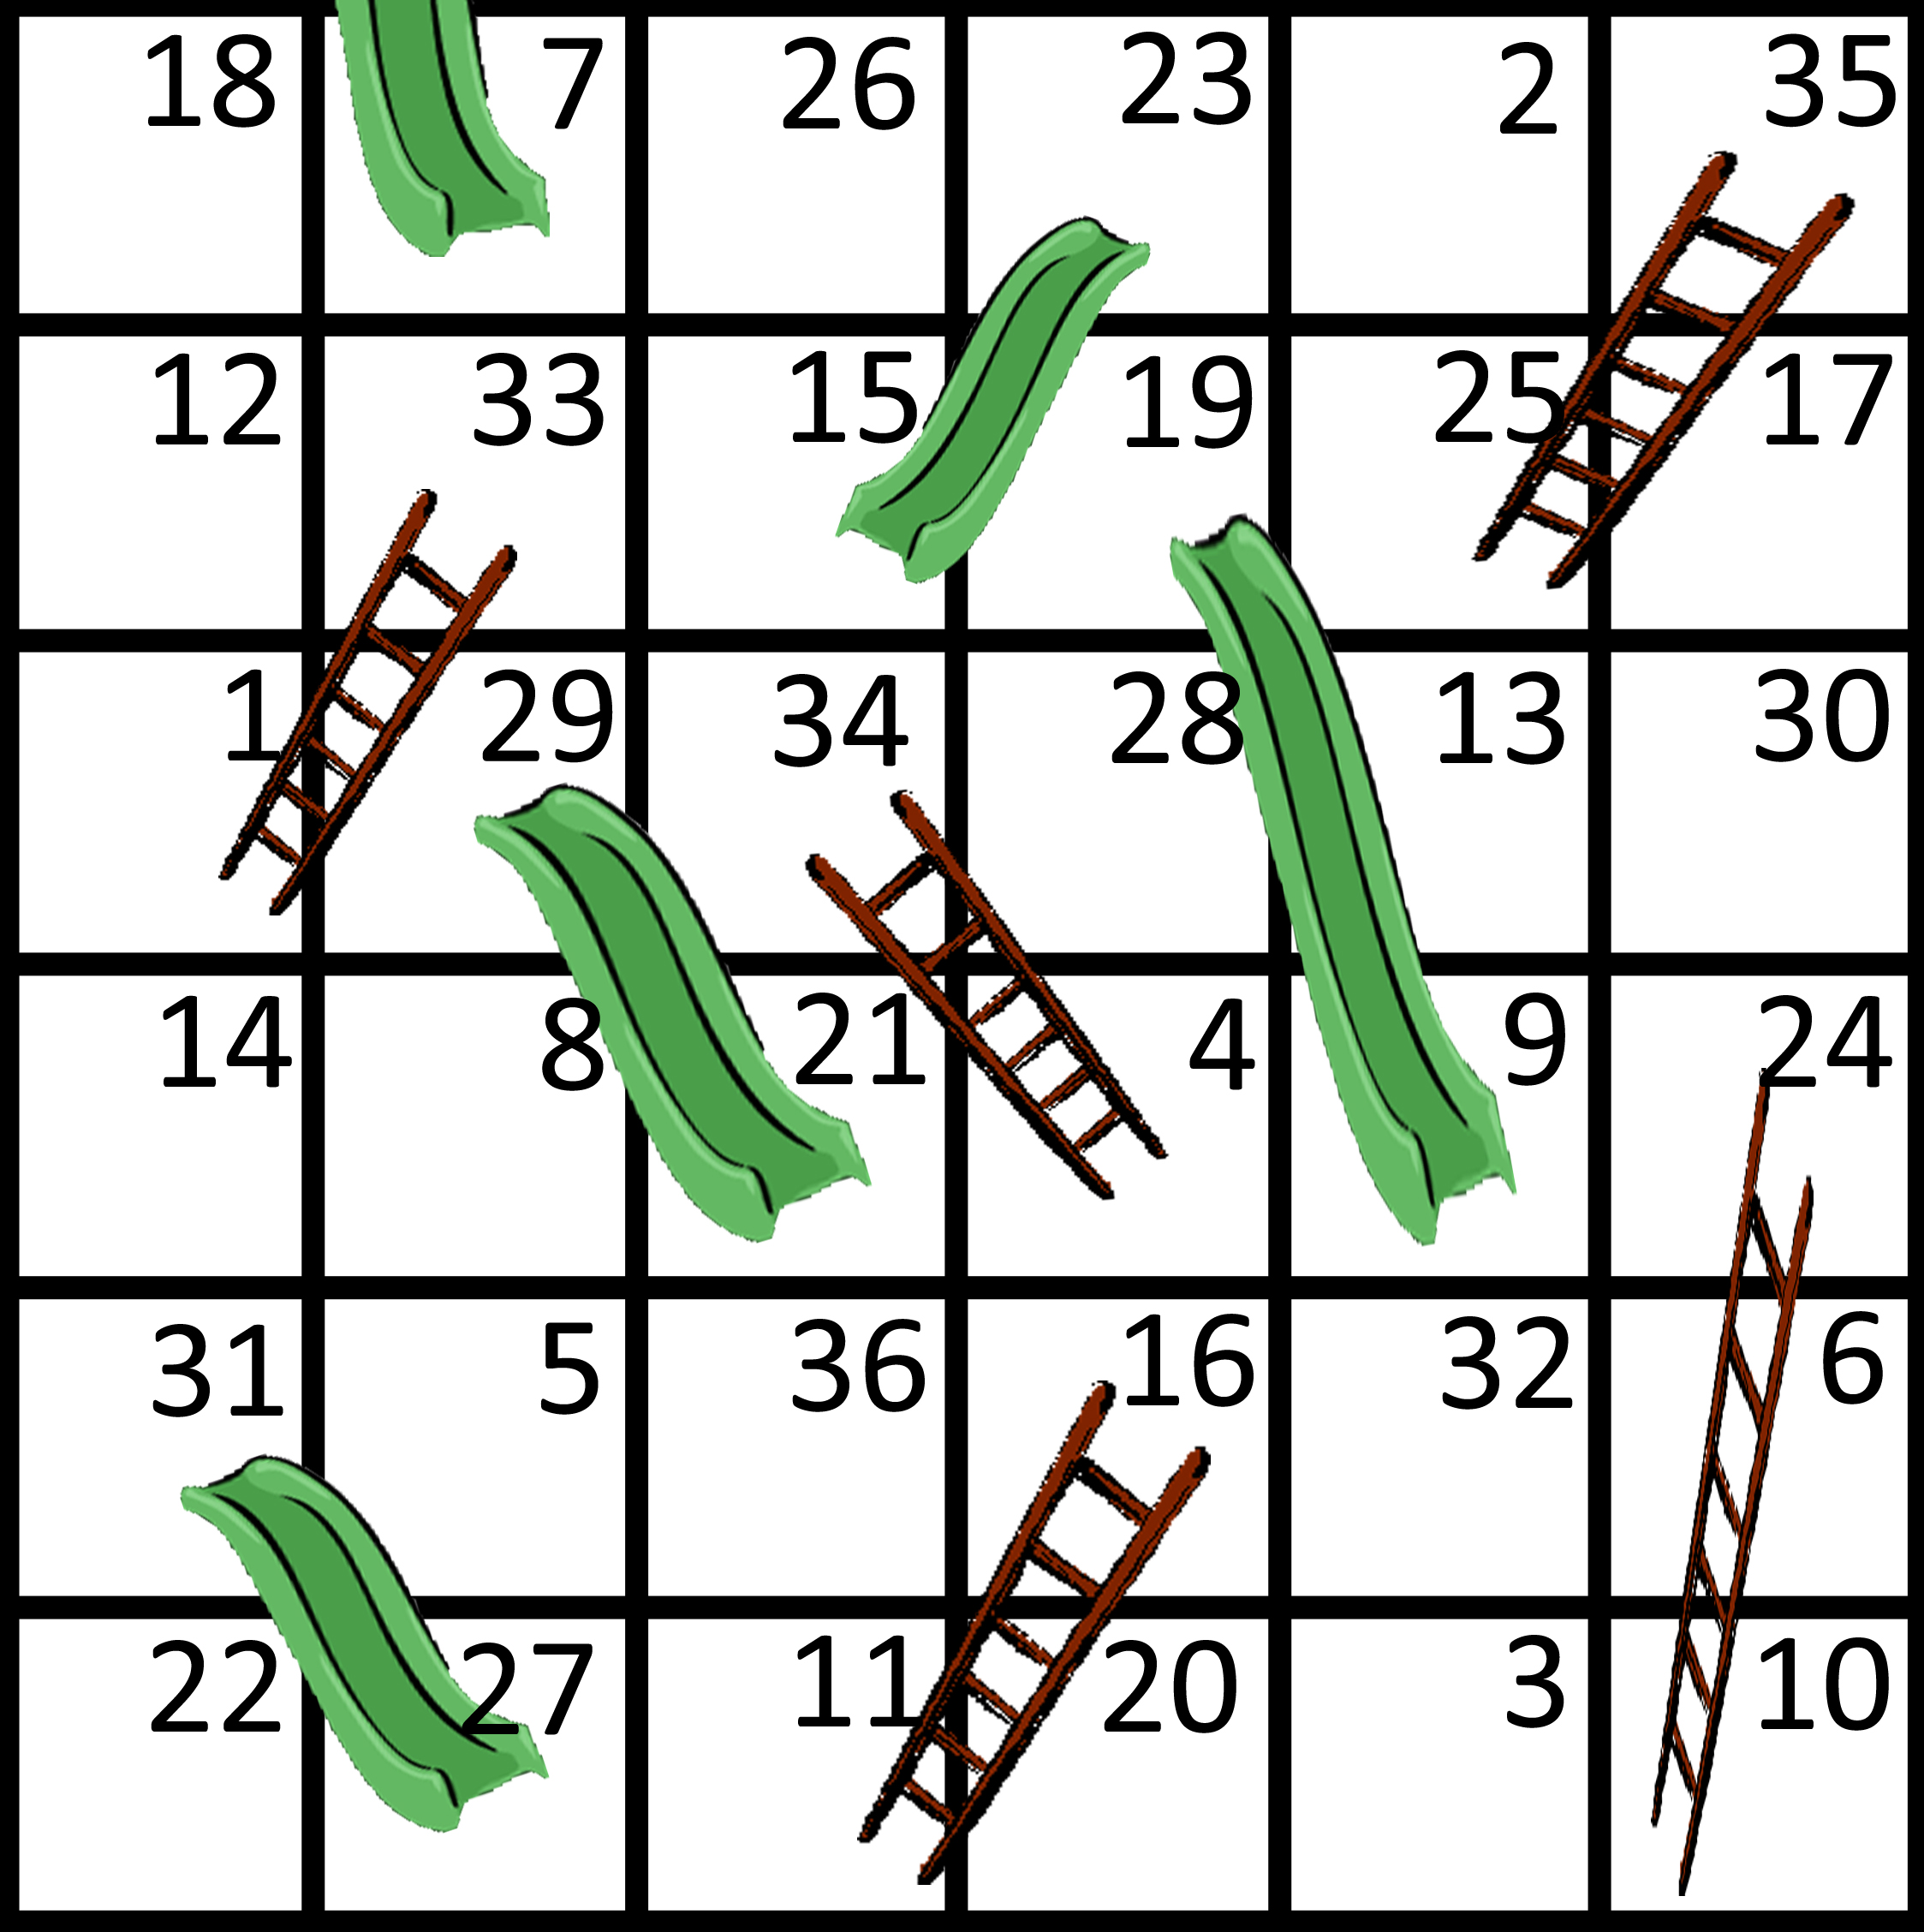 chutes and ladders board game template - free coloring pages of chutes and ladders